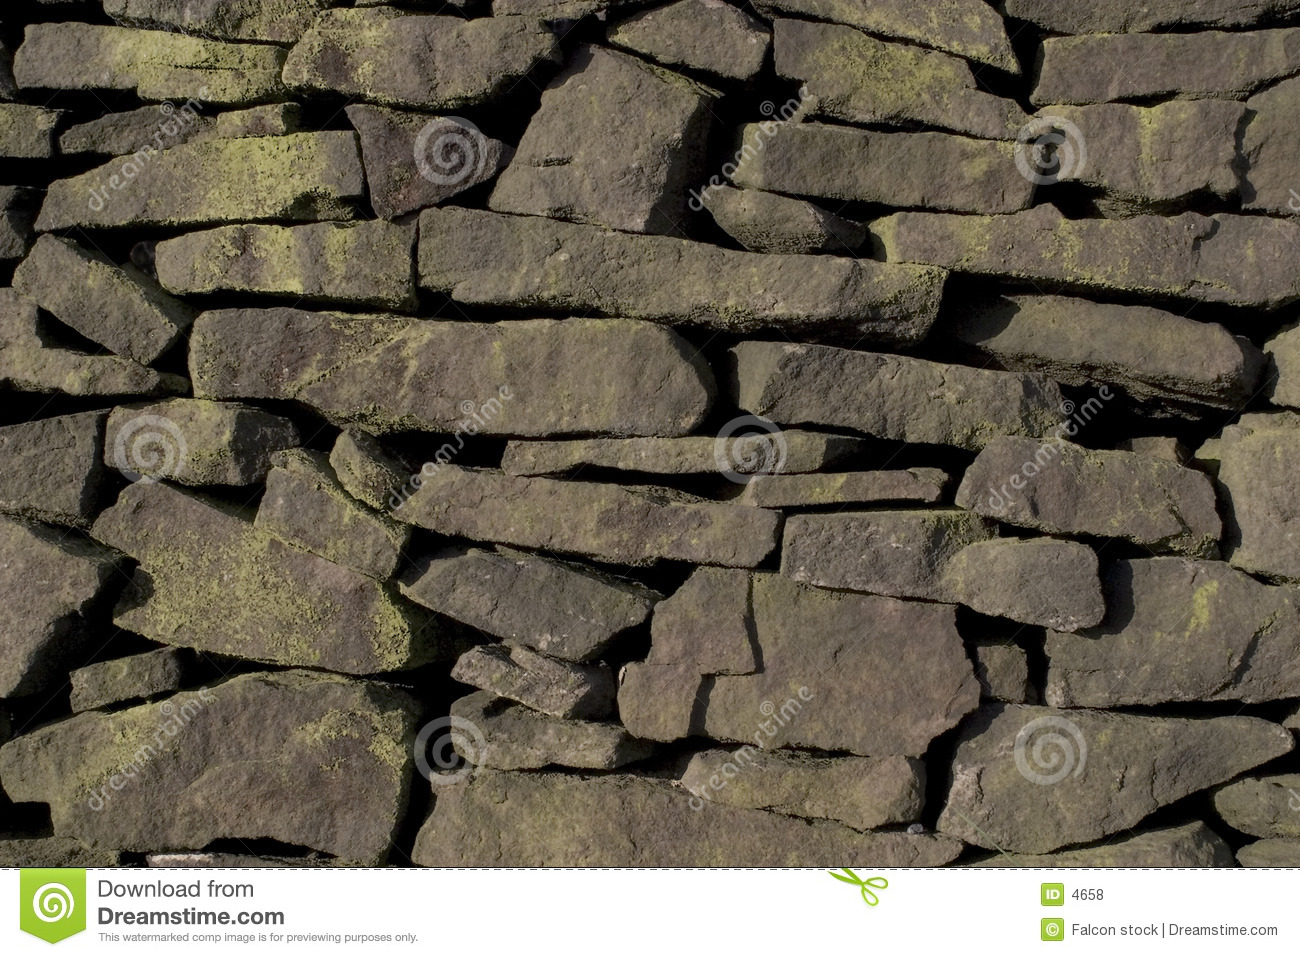 Parede Drystone (Gritstone)